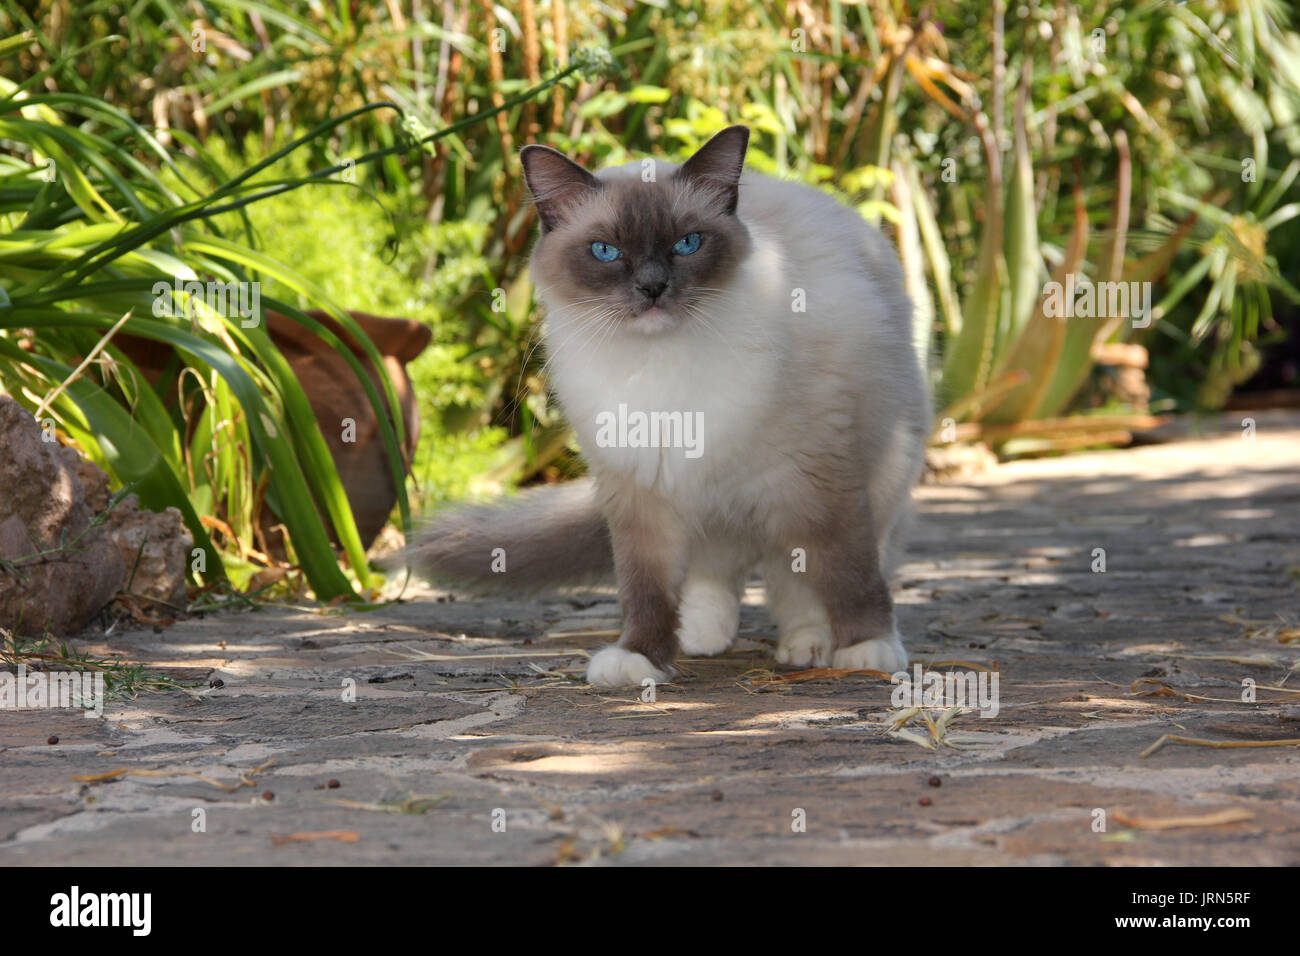 domestic cat, ragdoll, standing on a garden path with mediterranian plants - Stock Image